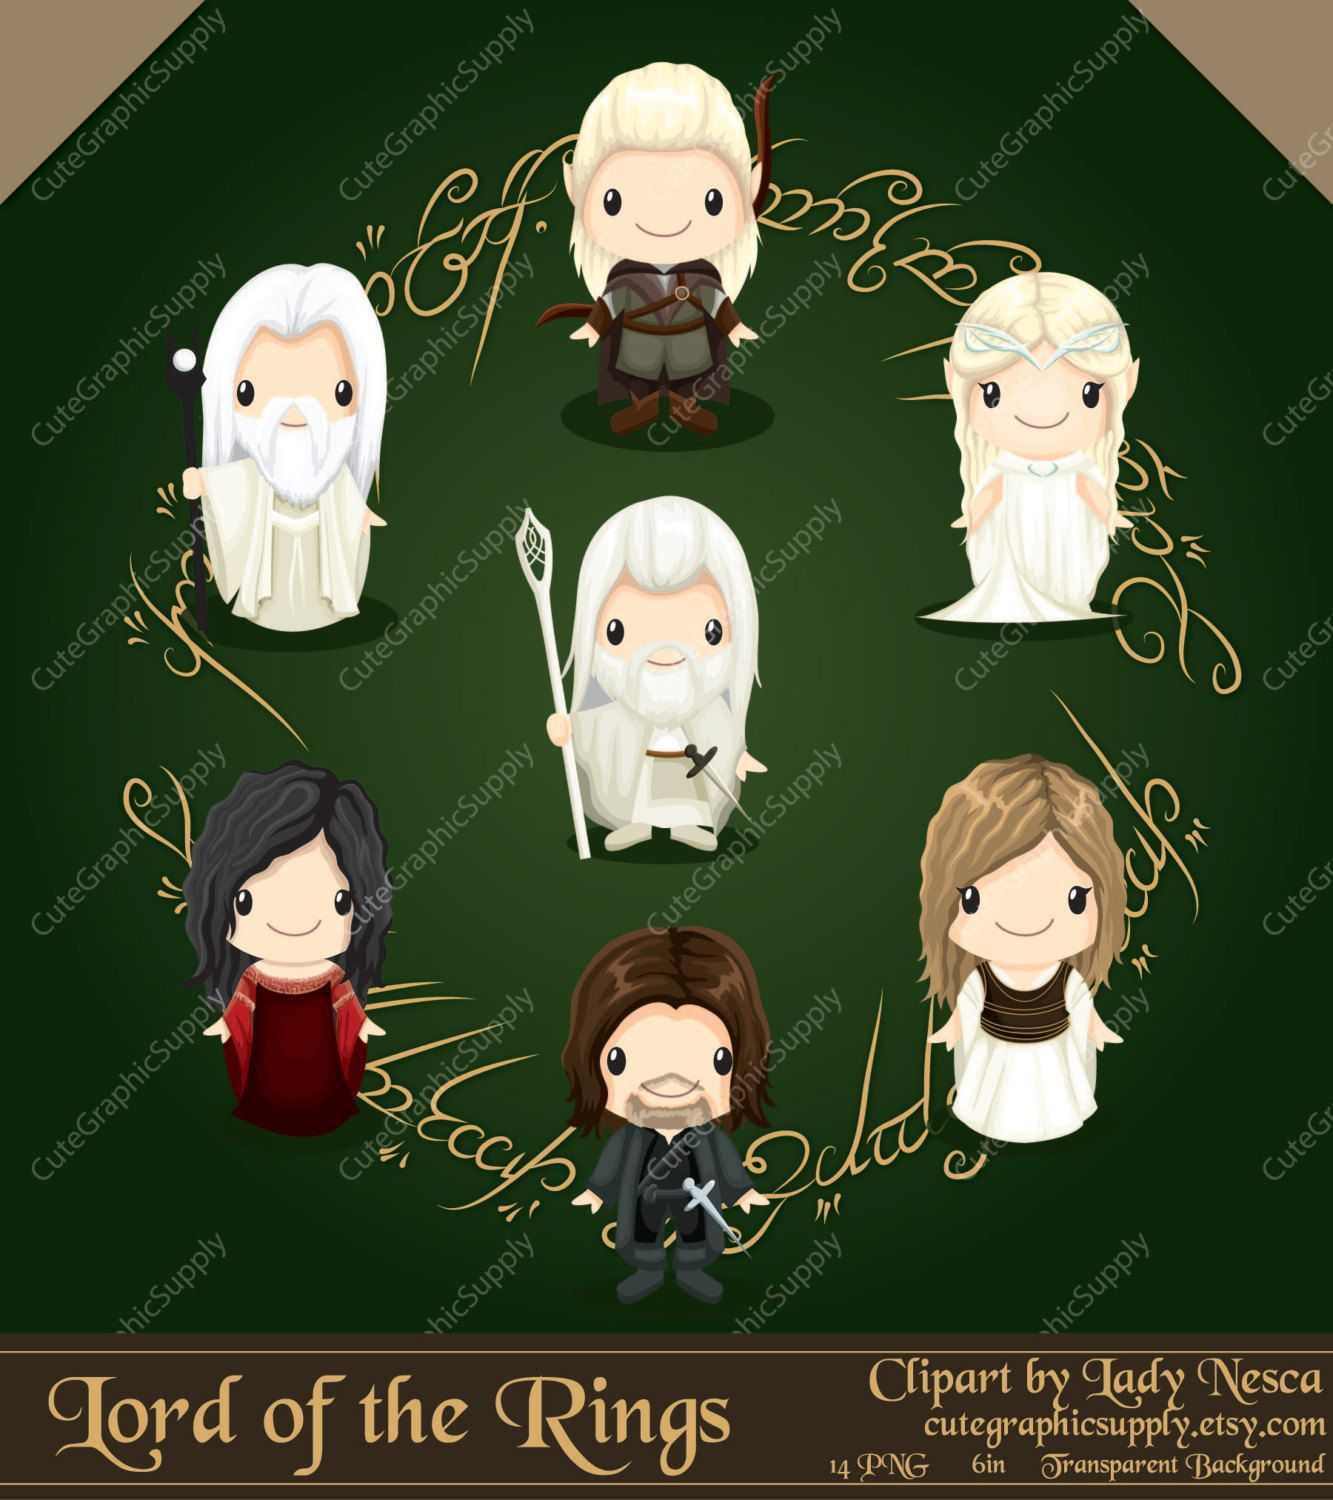 Lord of the Rings inspired clipart hobbit by CuteGraphicSupply